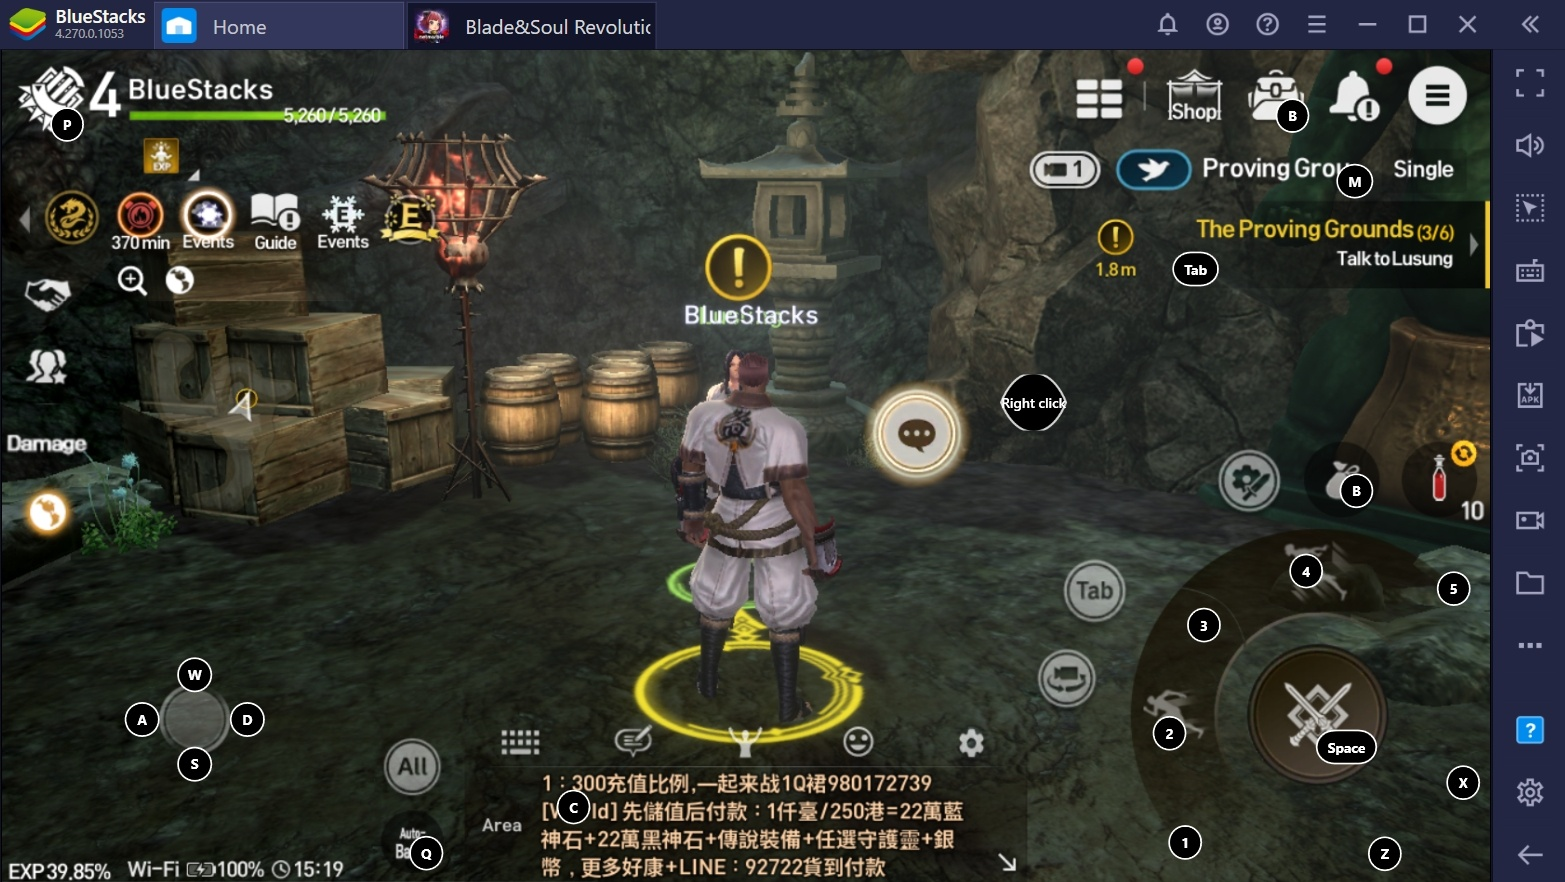 How to Play Blade & Soul: Revolution on PC with BlueStacks